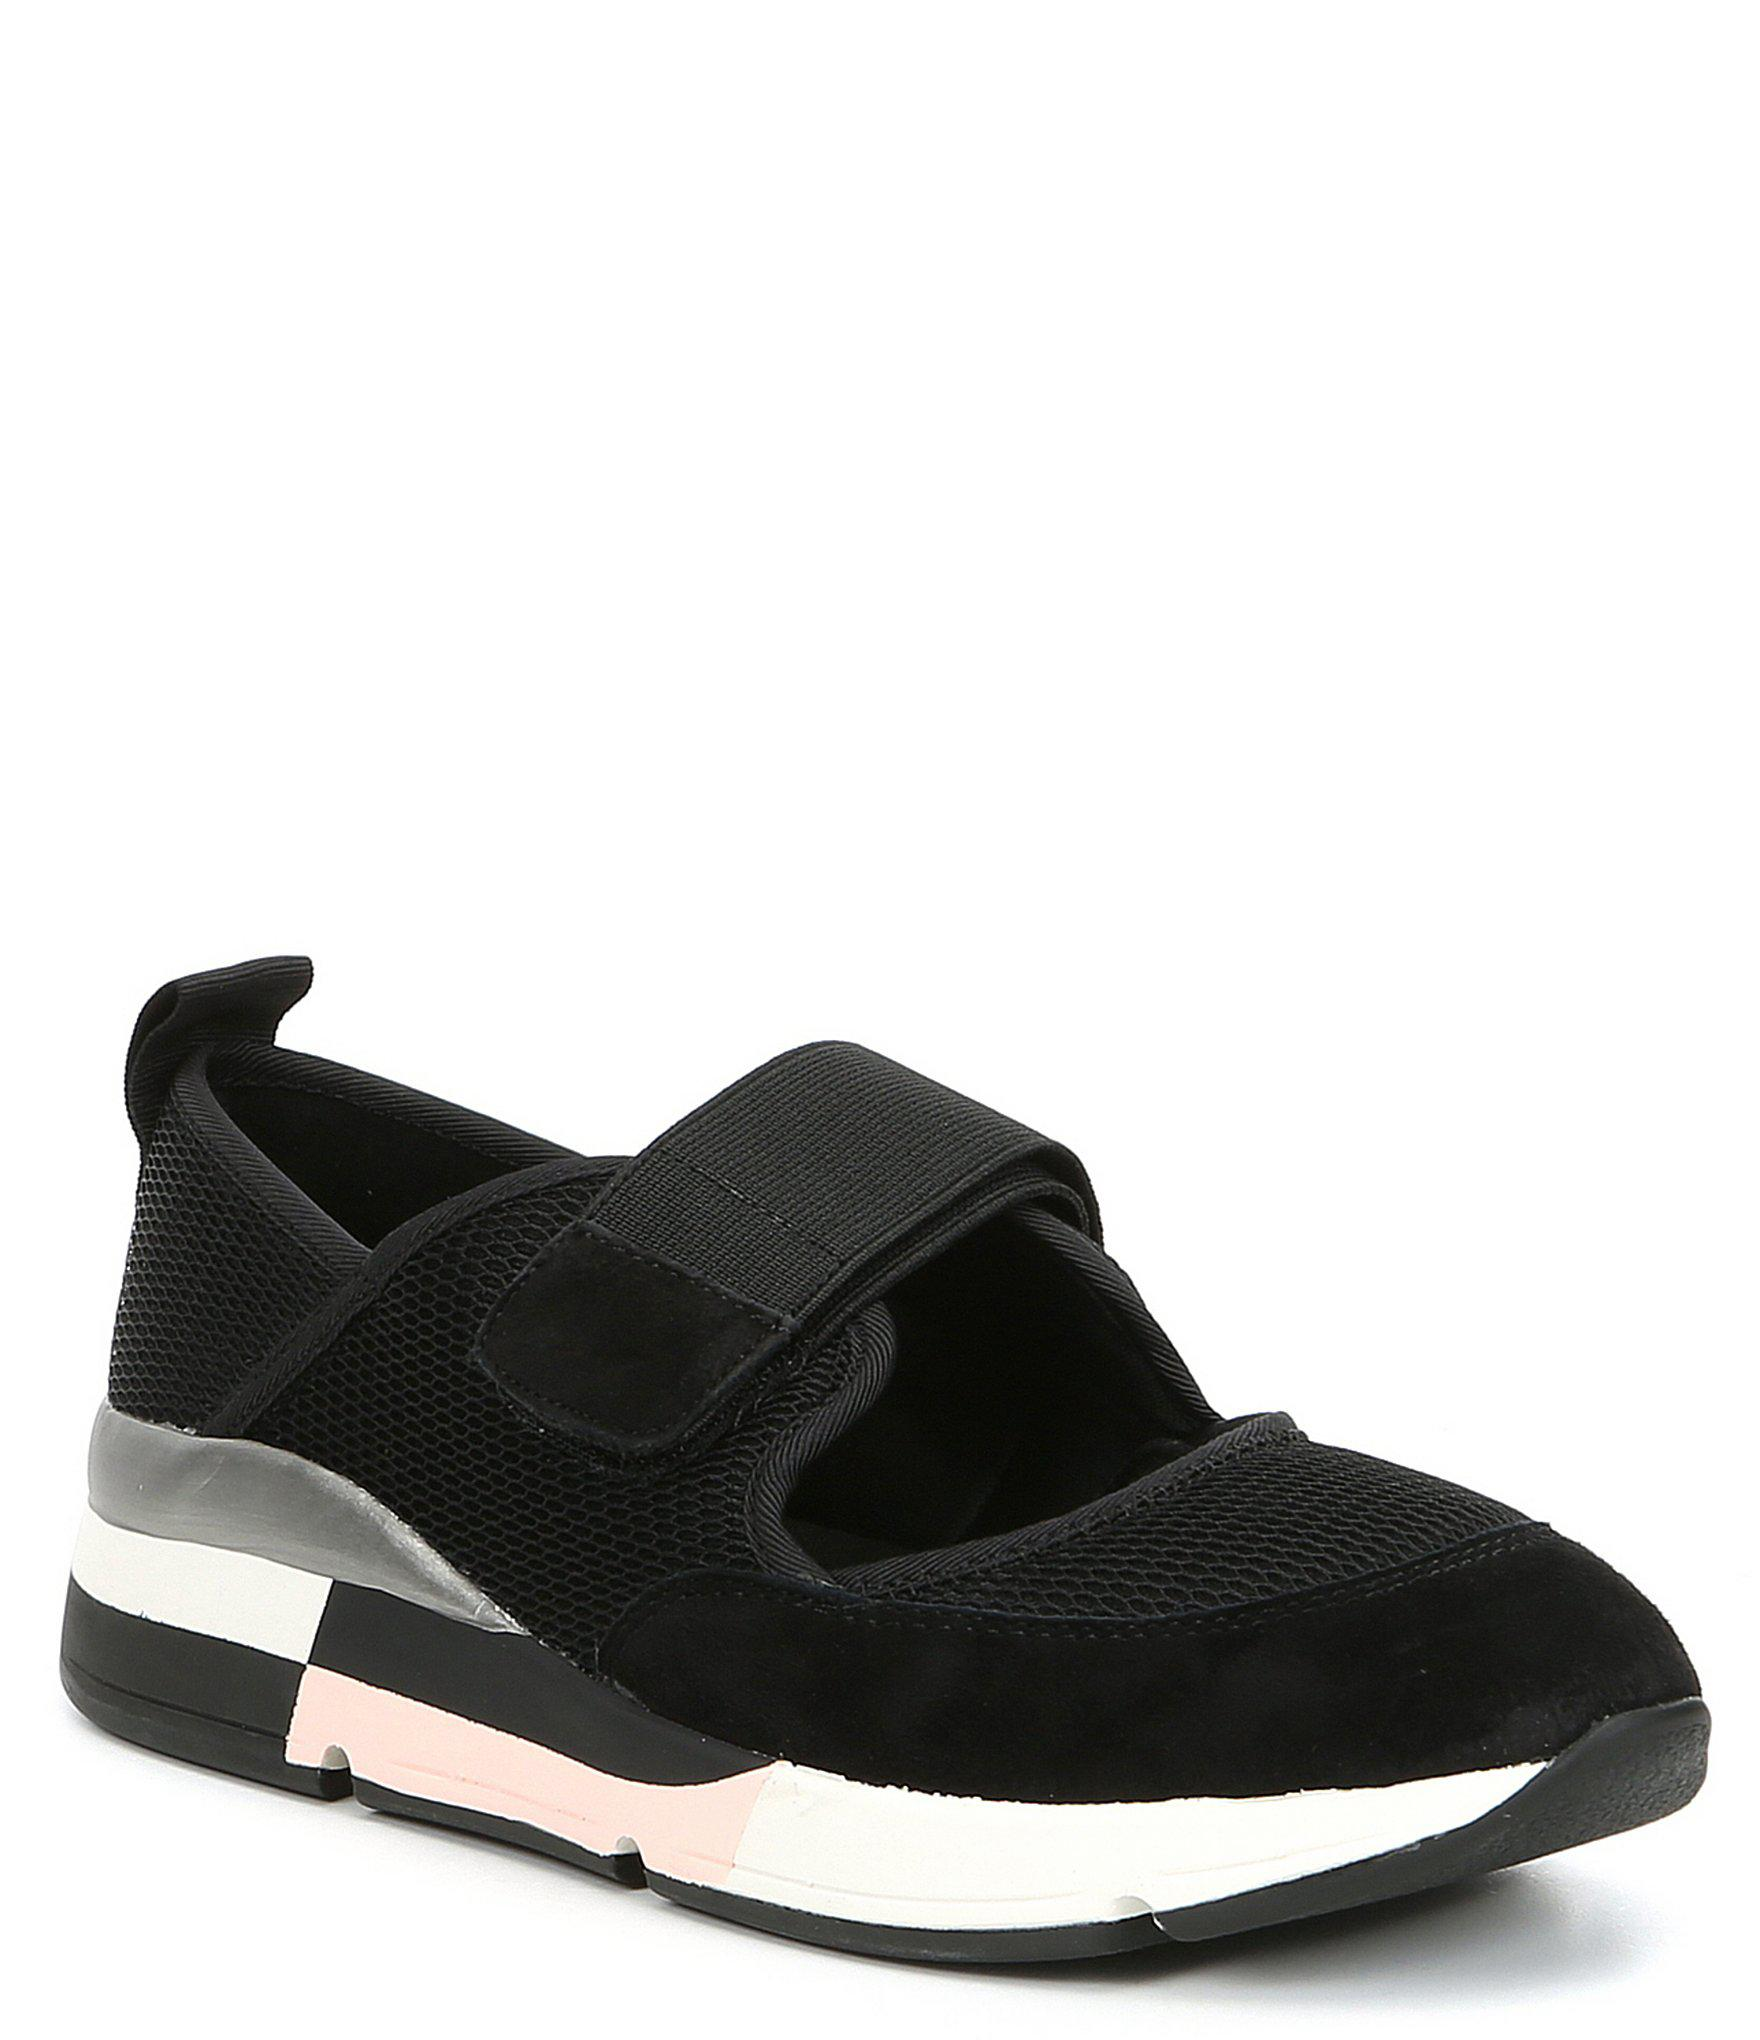 389e0d6fd7780 Steve Madden Steven By Silla Colorblock Sneakers in Black - Lyst